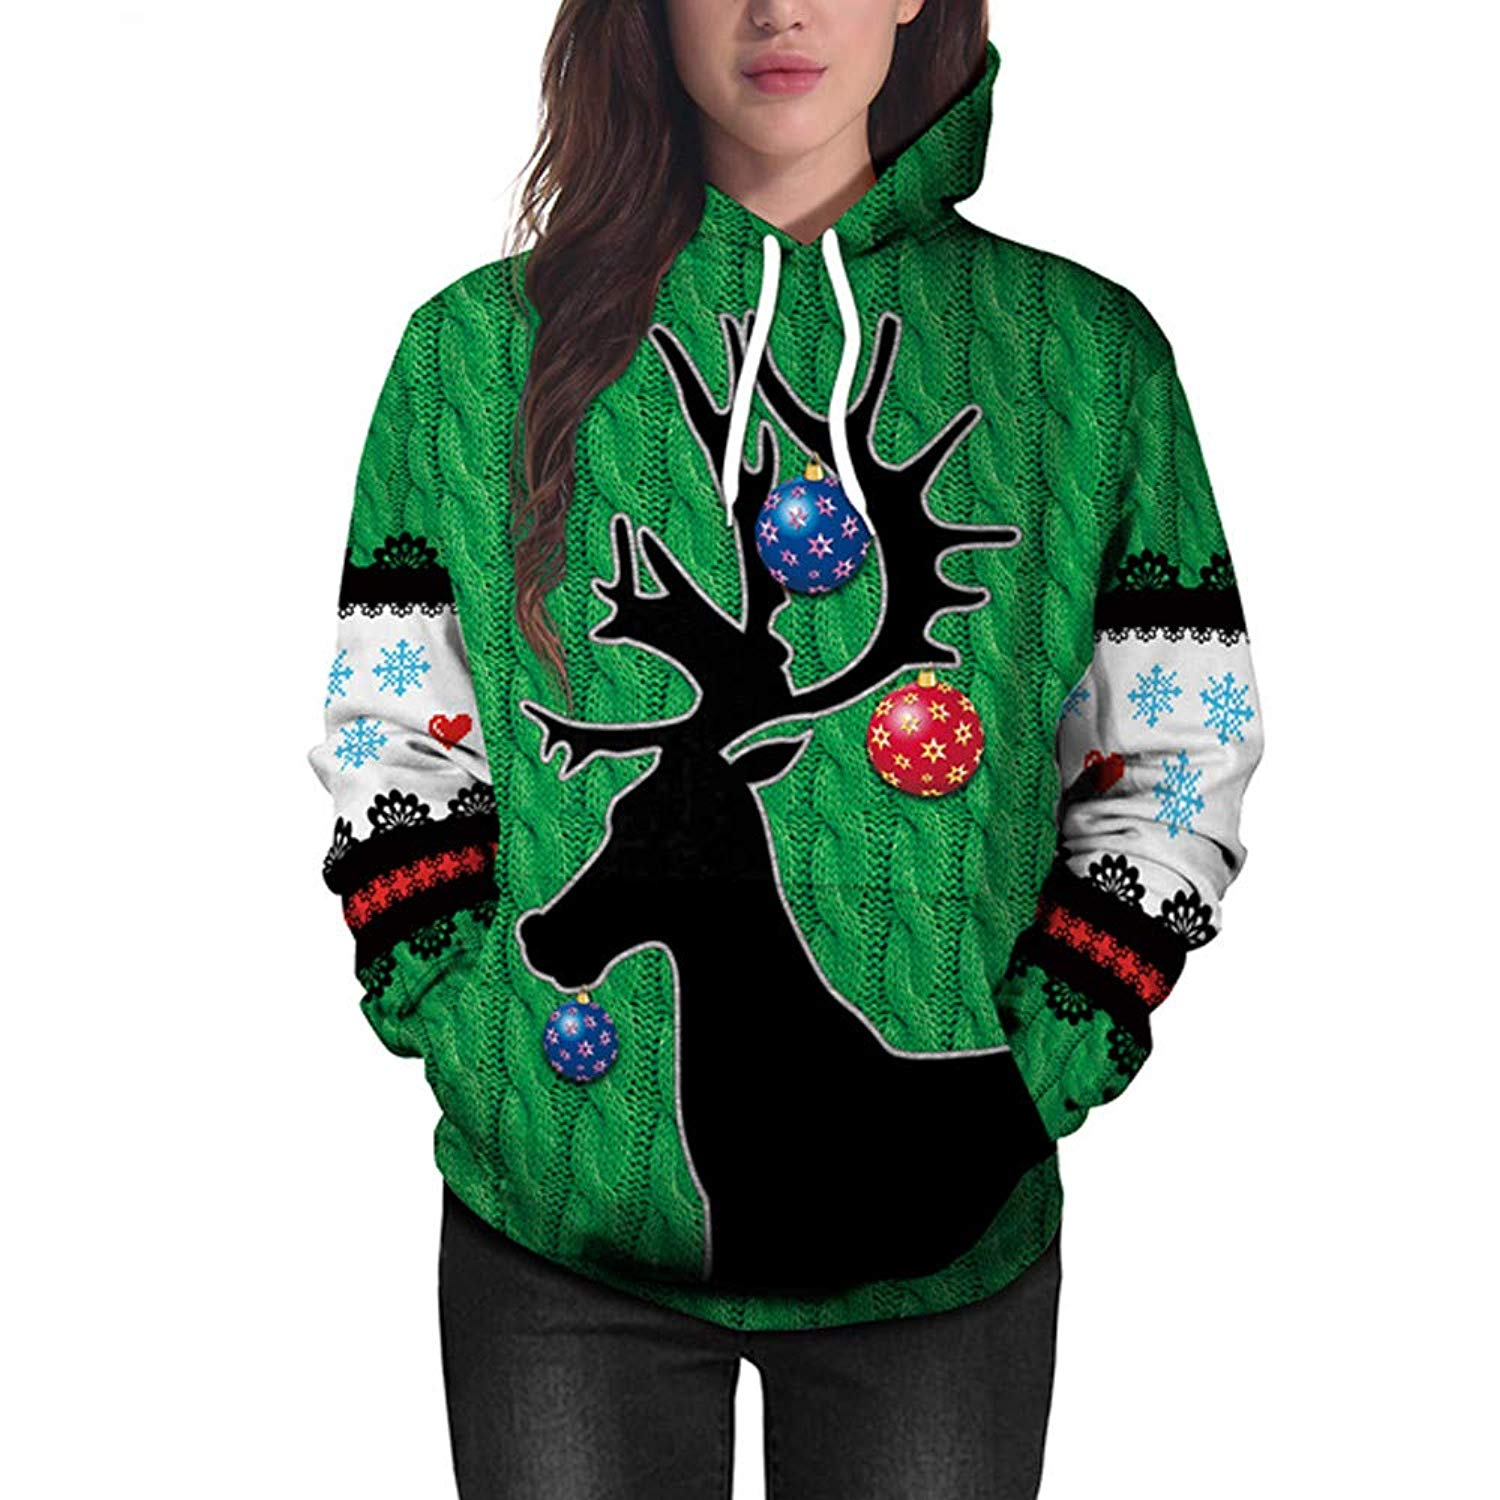 BOLUOYI Crop Tops for Women,Women Christmas Deer 3D Printing Long Sleeve Hoodie Sweatshirt Pullover Top